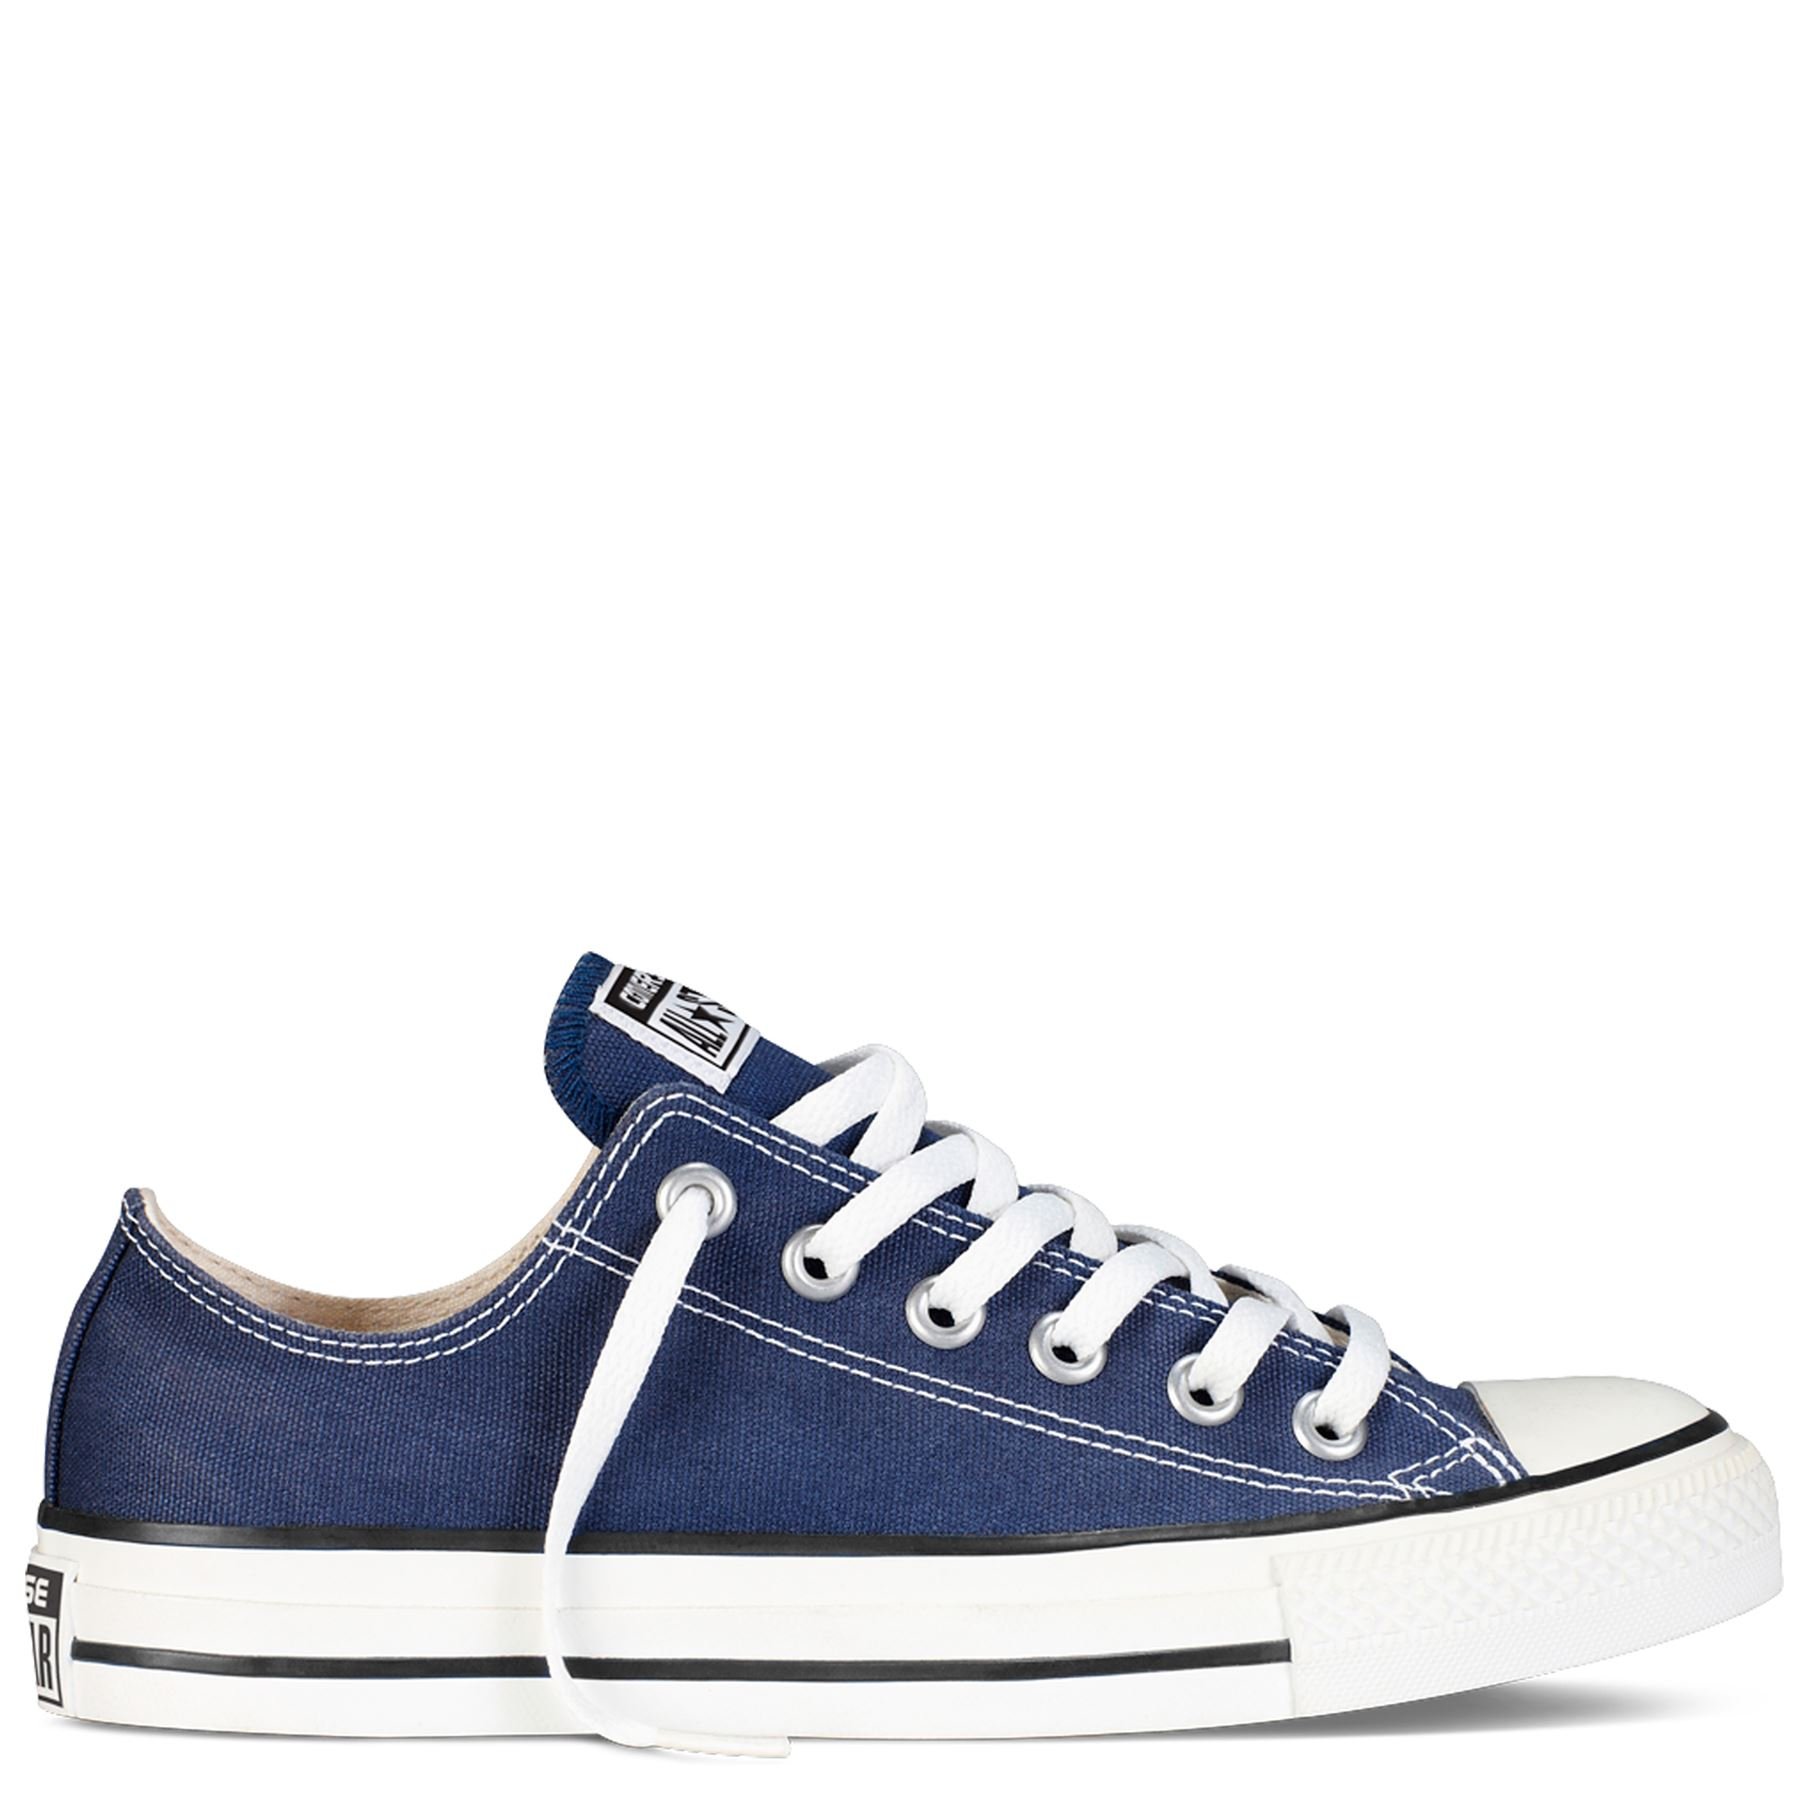 Converse-All-Star-Unisex-Chuck-Taylor-New-Mens-Womens-Low-Tops-Trainers-Pumps thumbnail 14